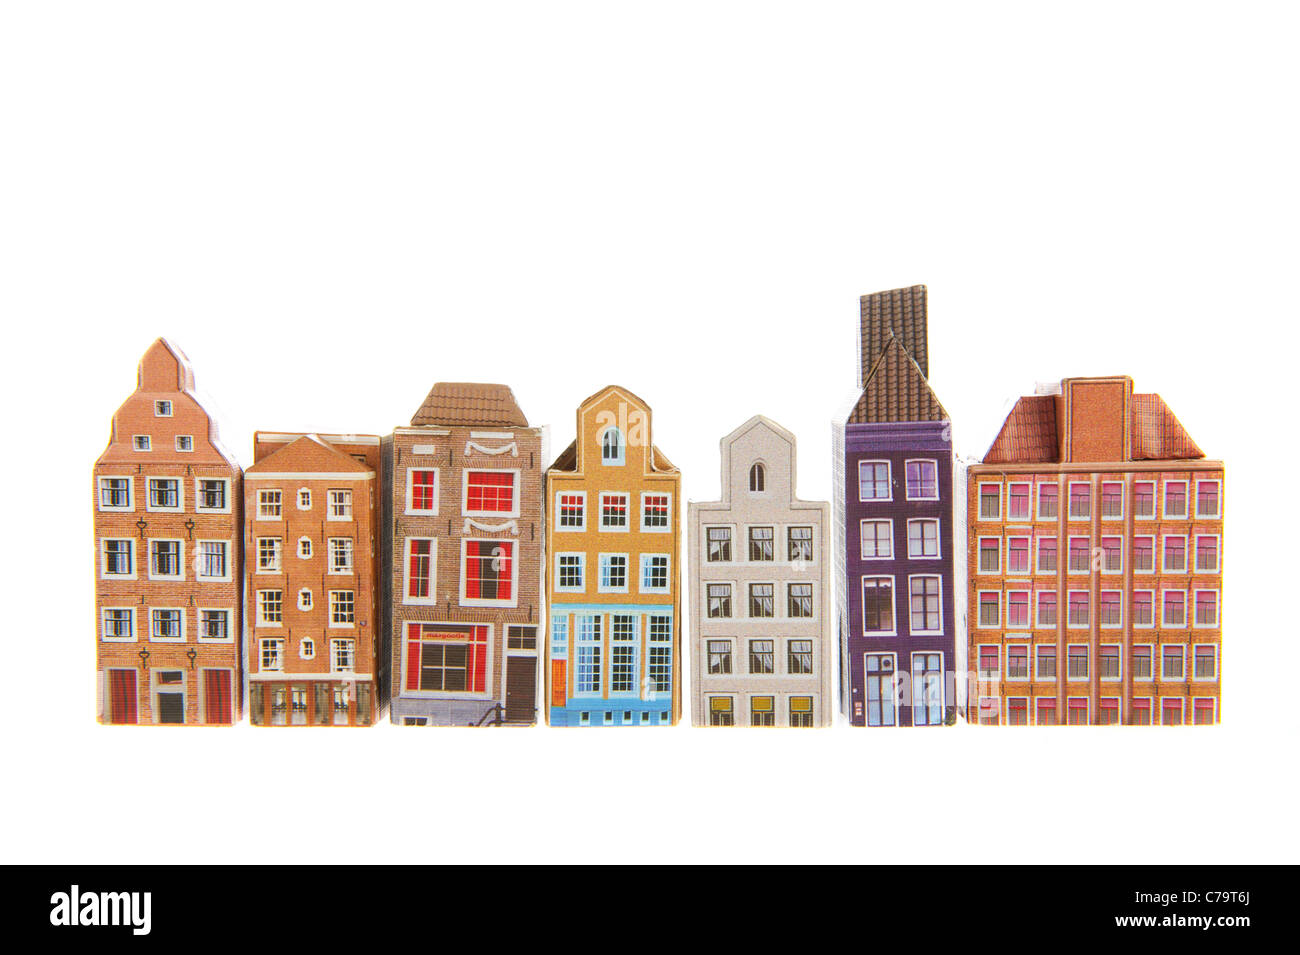 Rangée de maisons typiques d'Amsterdam isolated over white background Photo Stock